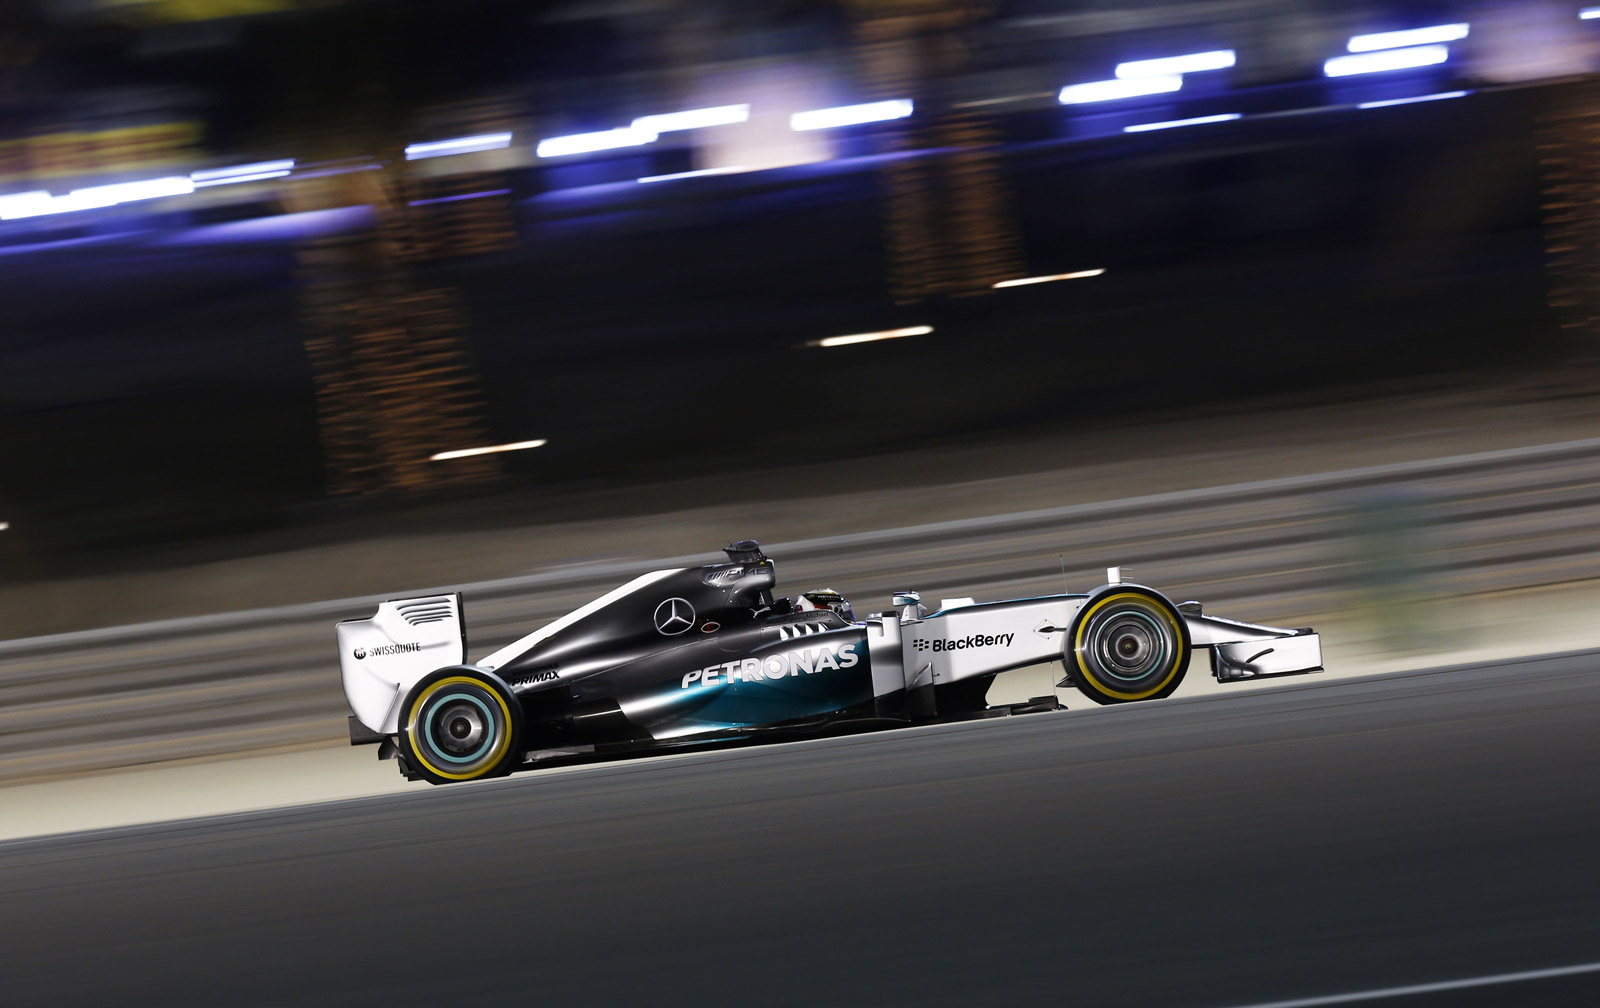 Mercedes amg lock out front row for 2014 f1 bahrain grand prix for Mercedes benz bahrain